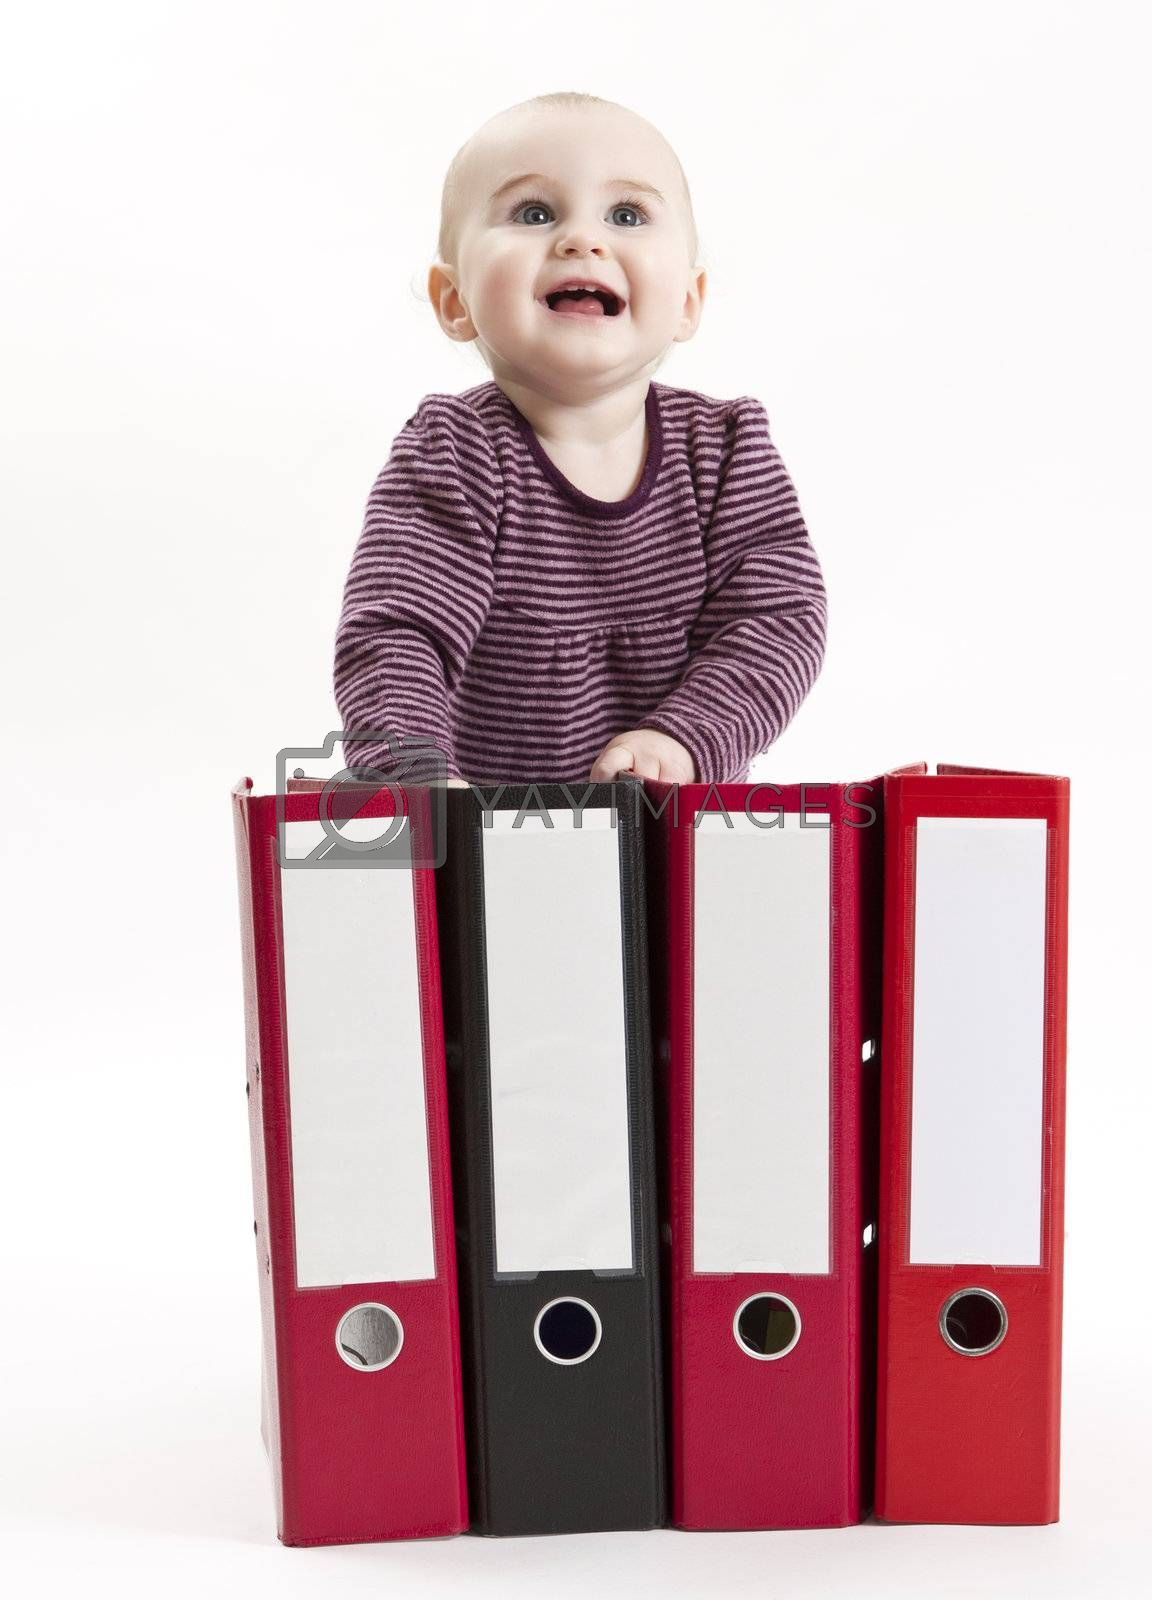 young child in light background with four ring files